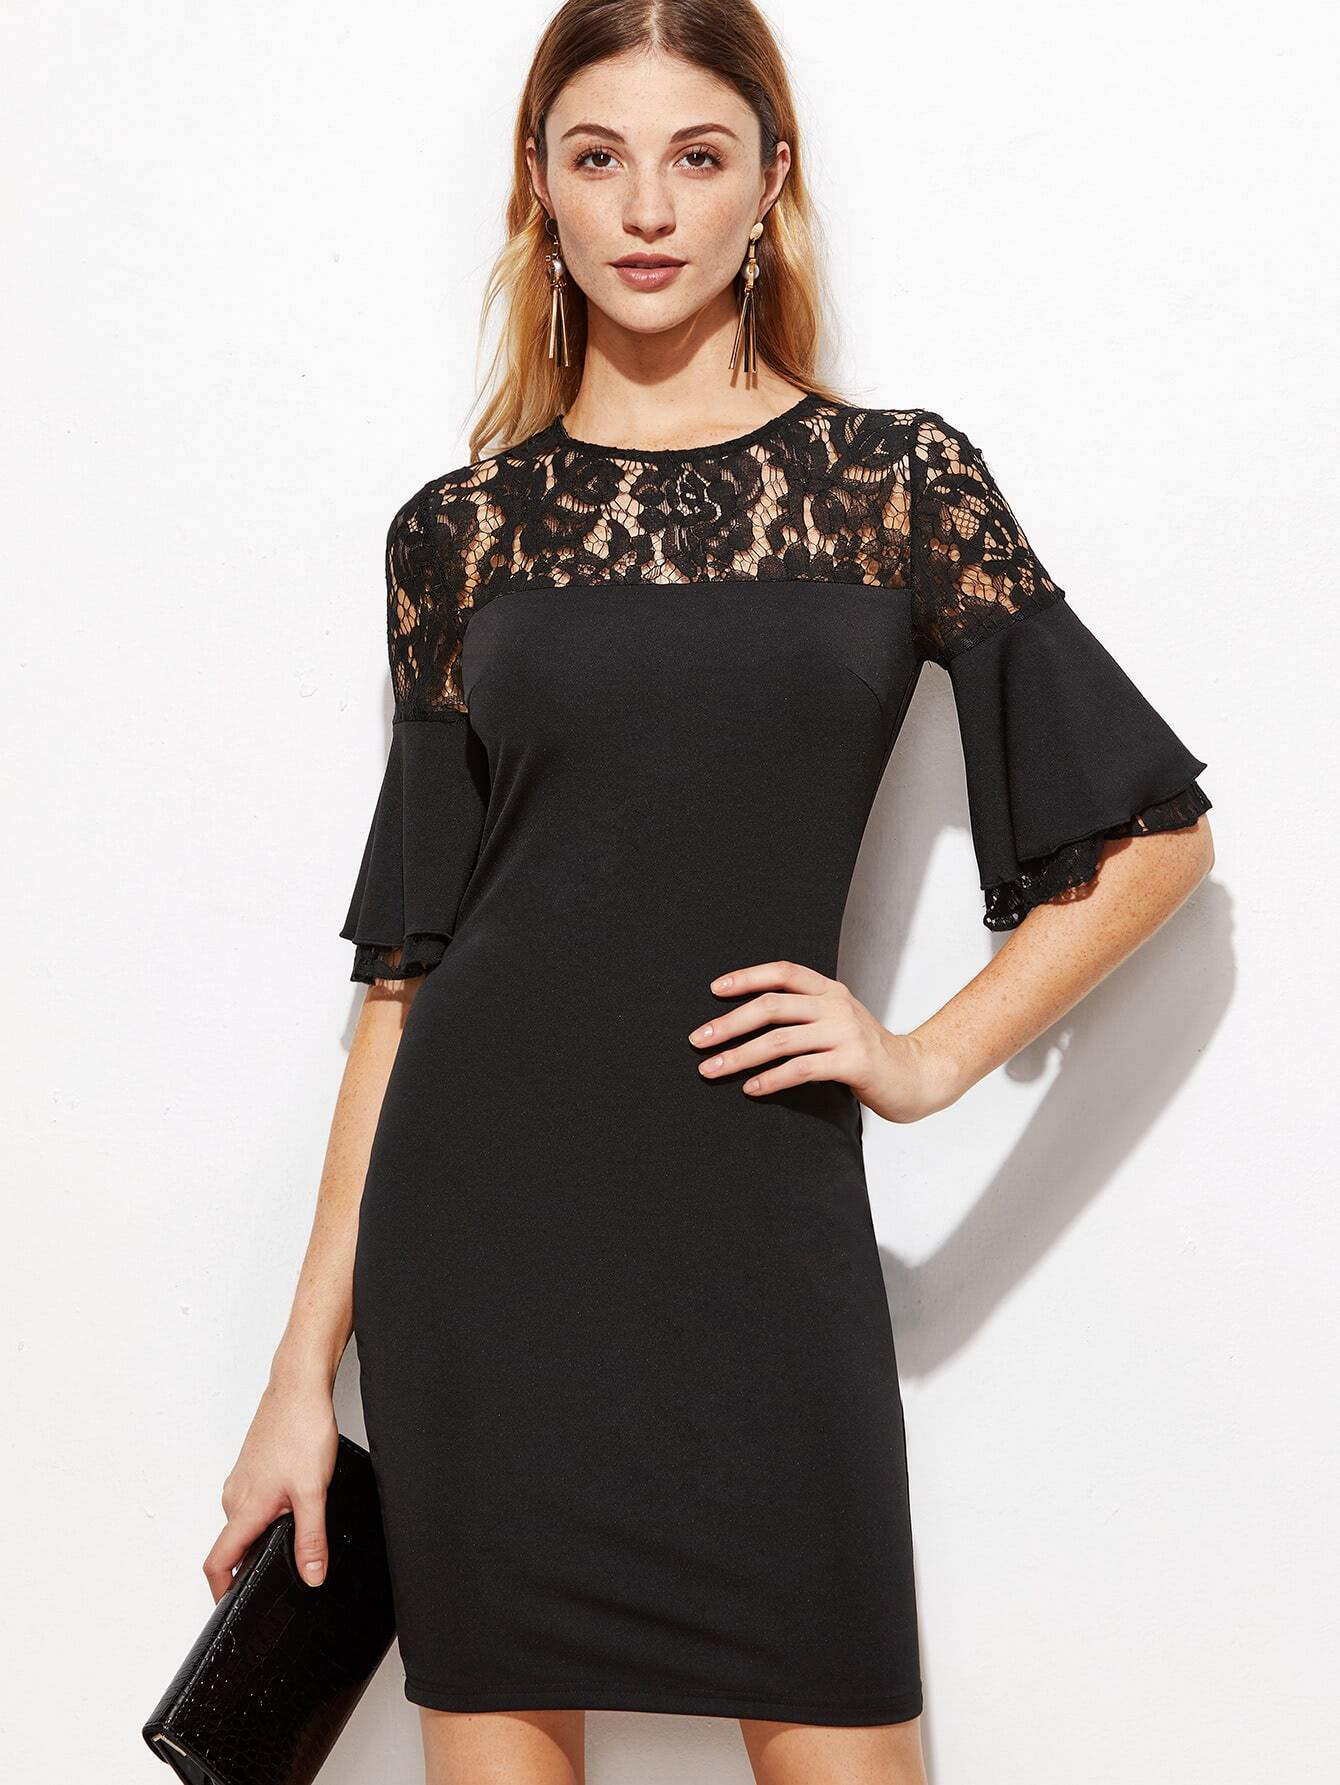 Black Sheer Lace Neck Ruffle Sleeve Bodycon DressBlack Sheer Lace Neck Ruffle Sleeve Bodycon Dress<br><br>color: Black<br>size: L,M,S,XS